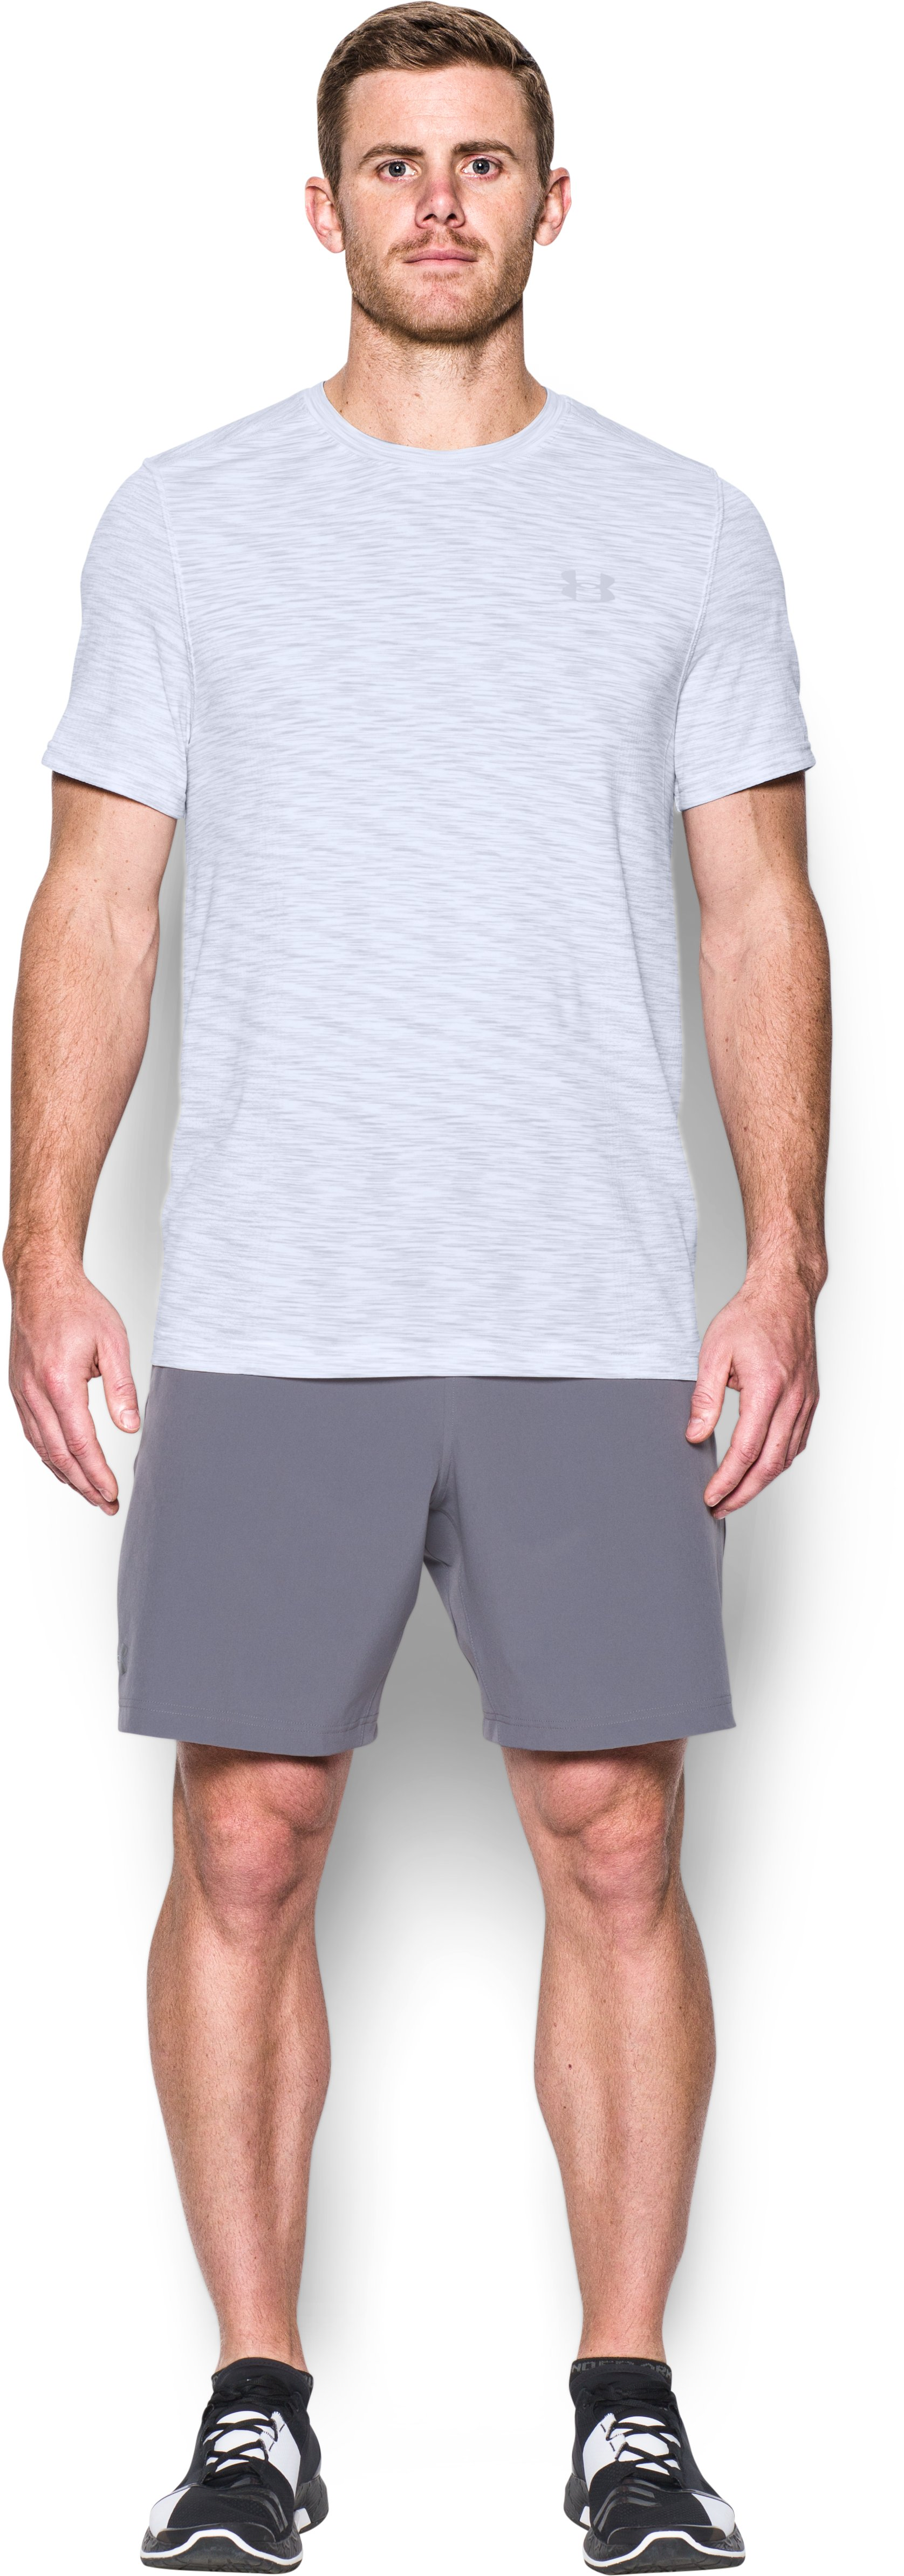 Men's UA Seamless T-Shirt 16 Colors $18.99 - $29.99